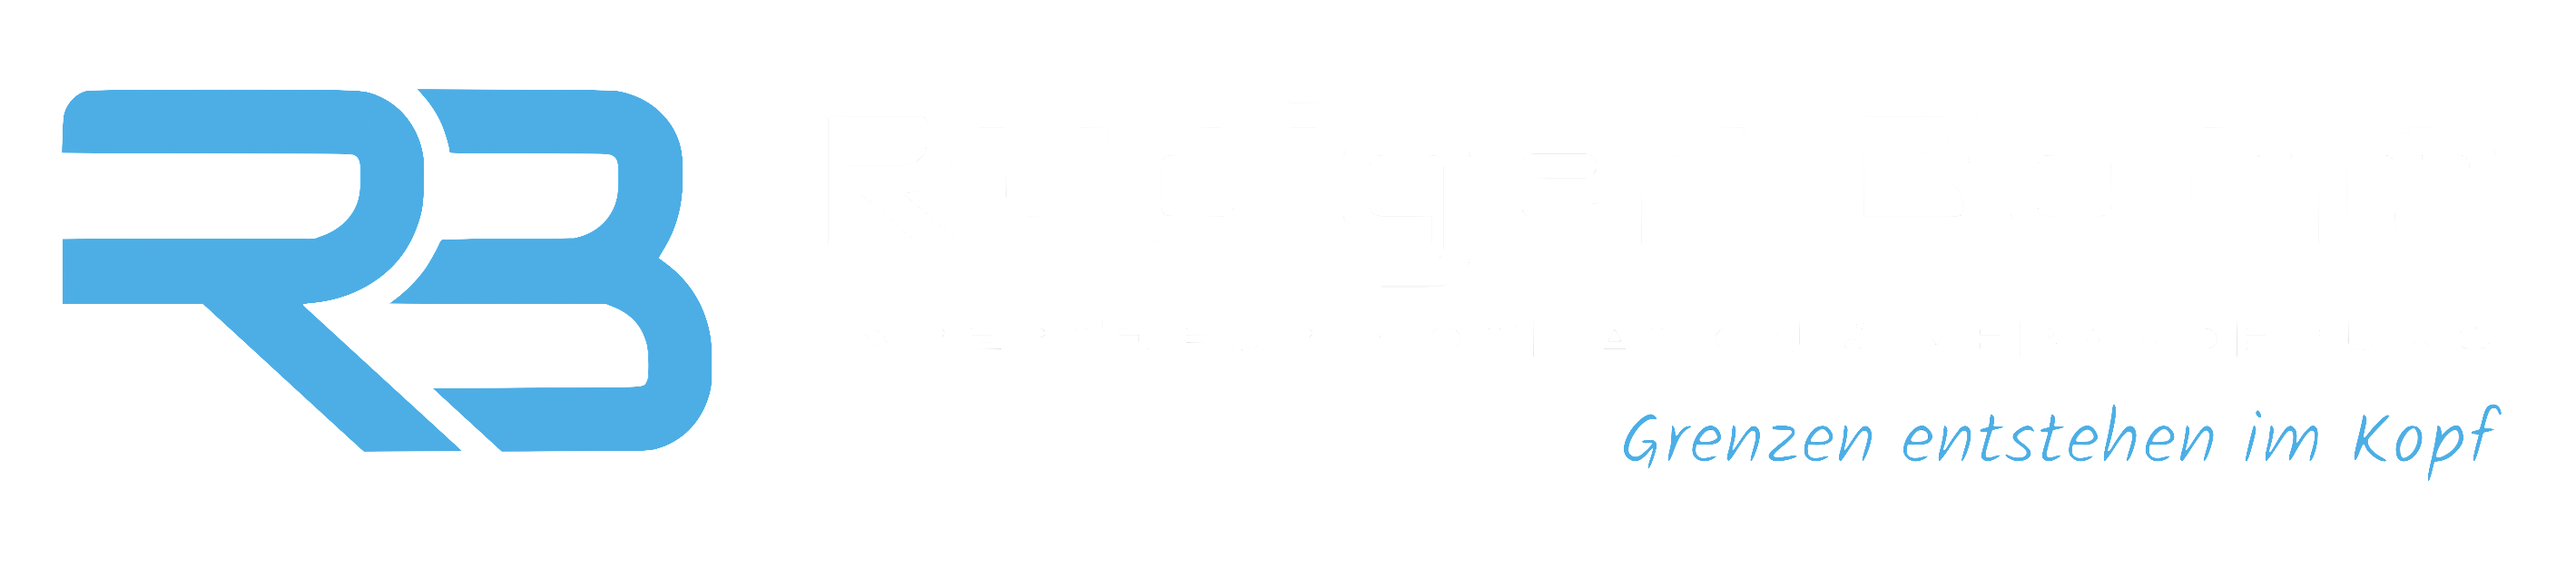 Rüdiger Böhm Motivation & Coaching Experte für Veränderung und Motivationsexperte